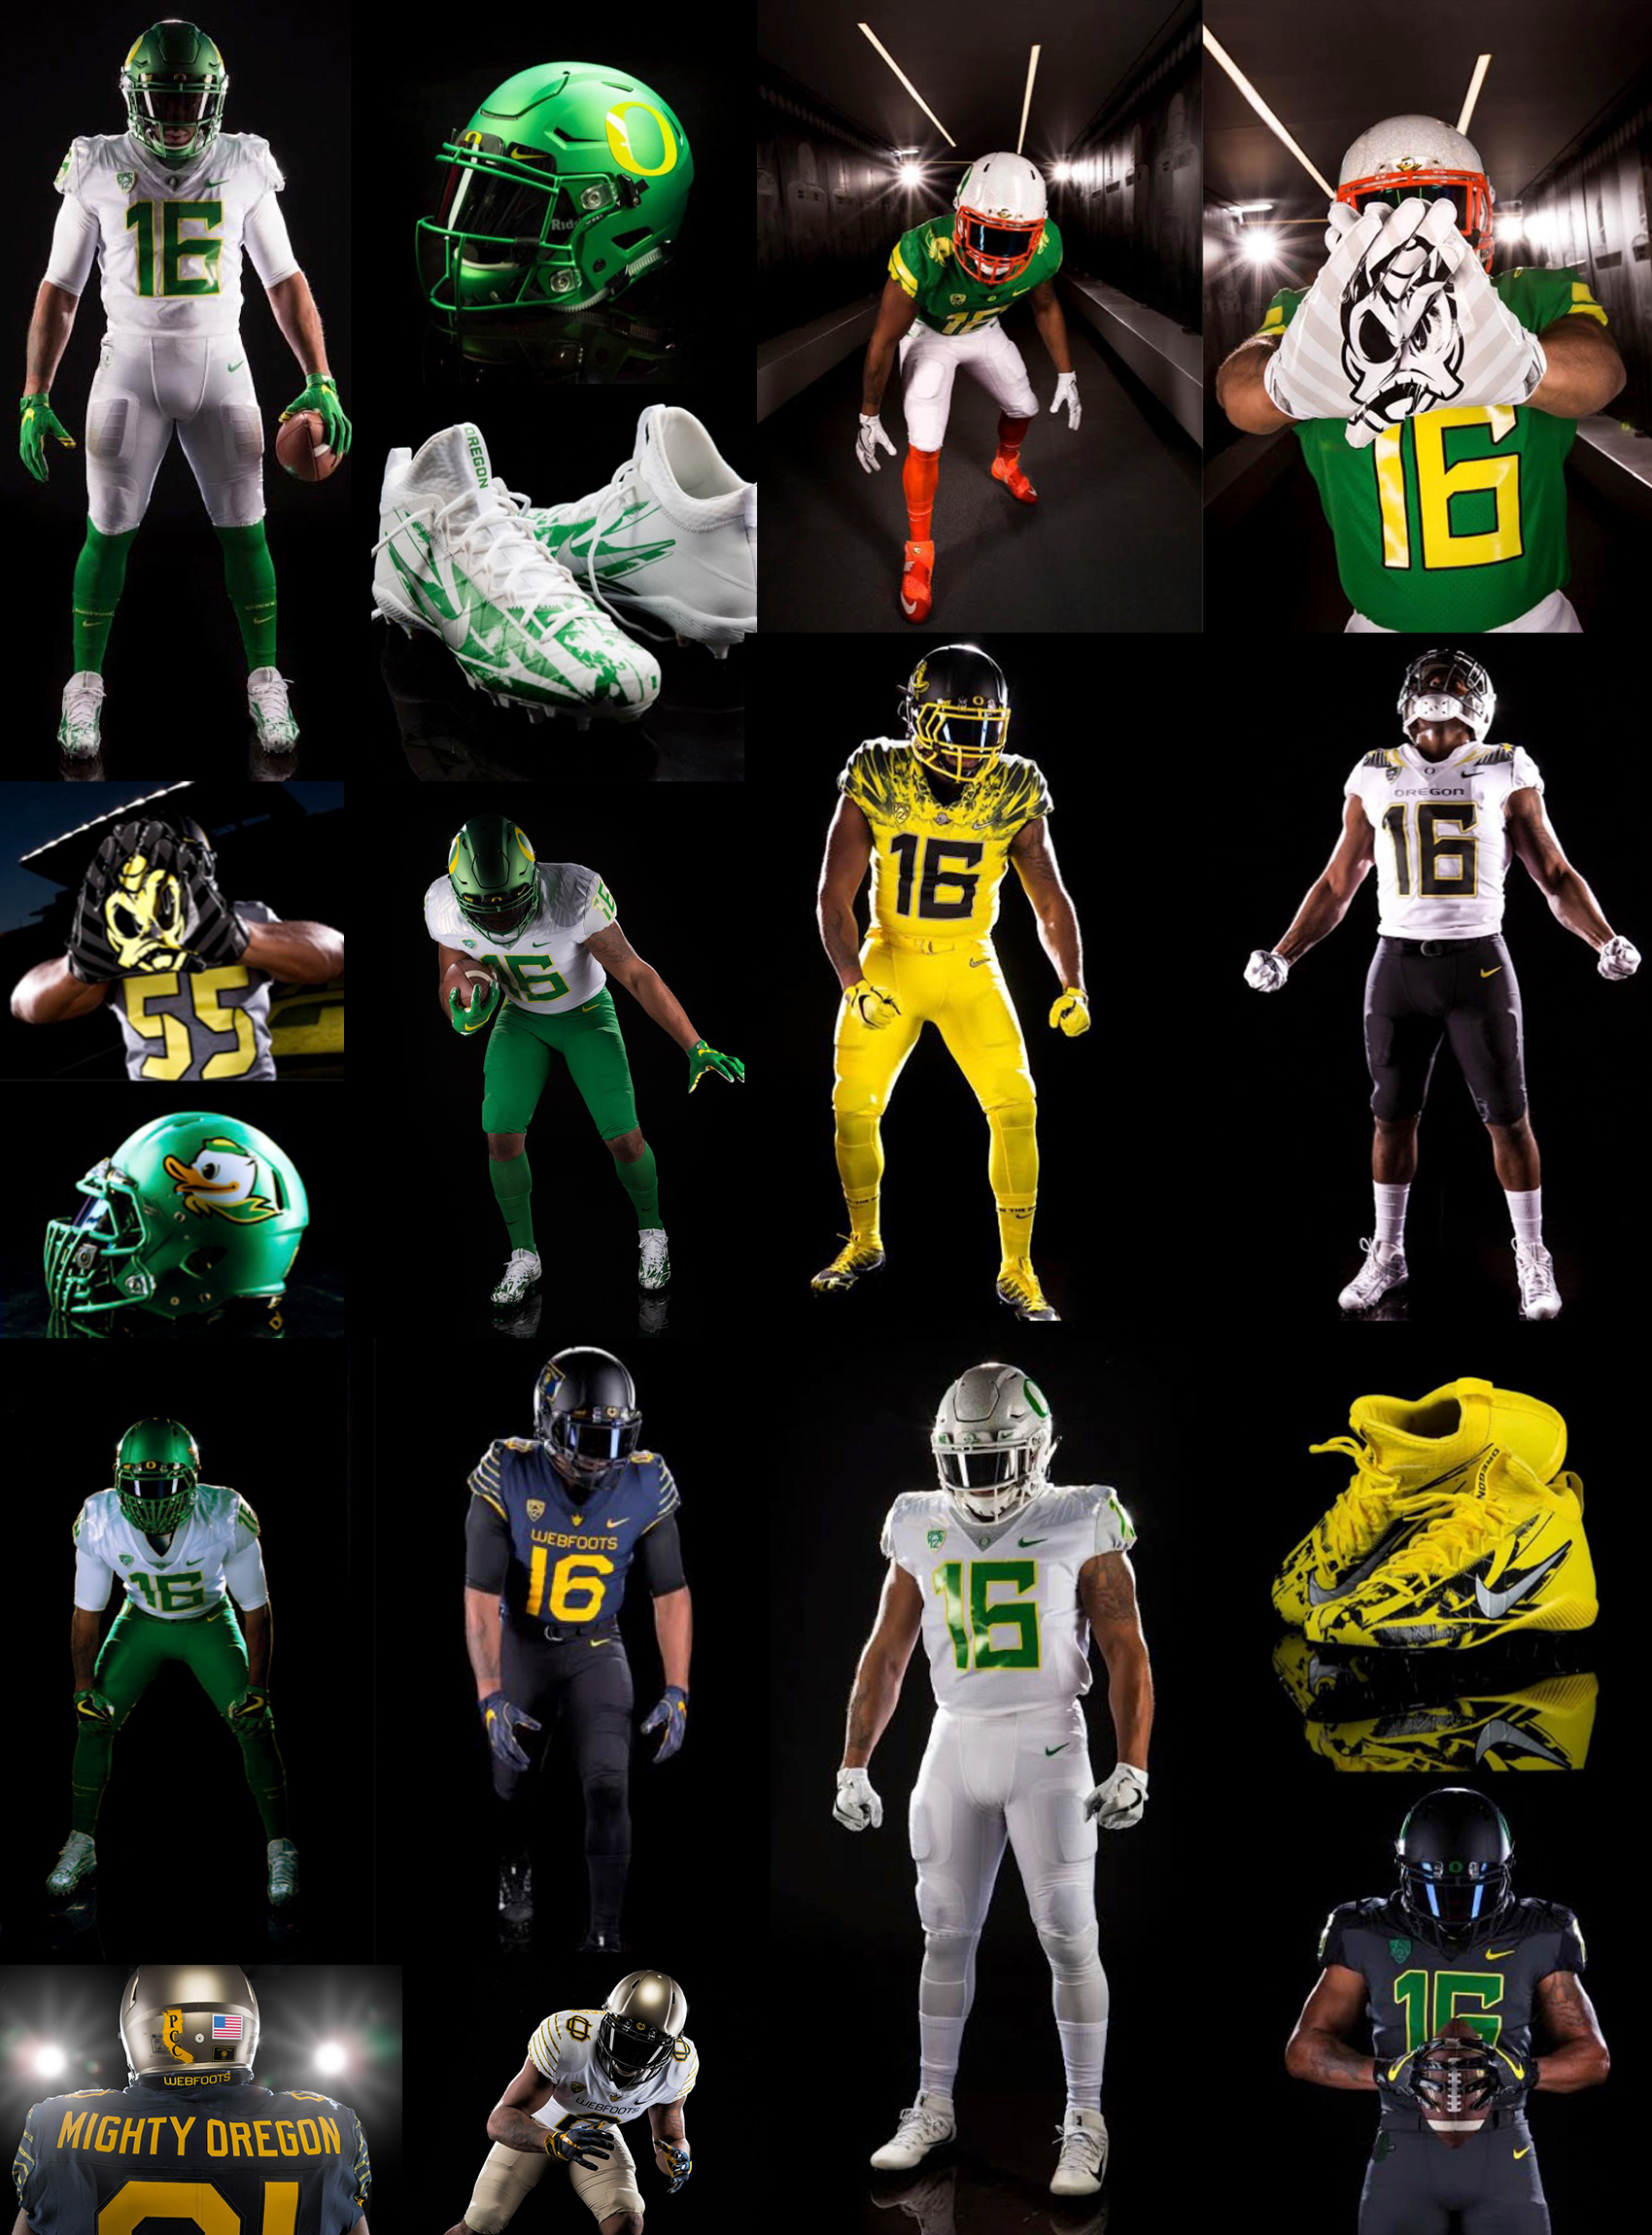 finest selection eb3f6 4cc47 Oregon Football Uniforms - University of Oregon Athletics